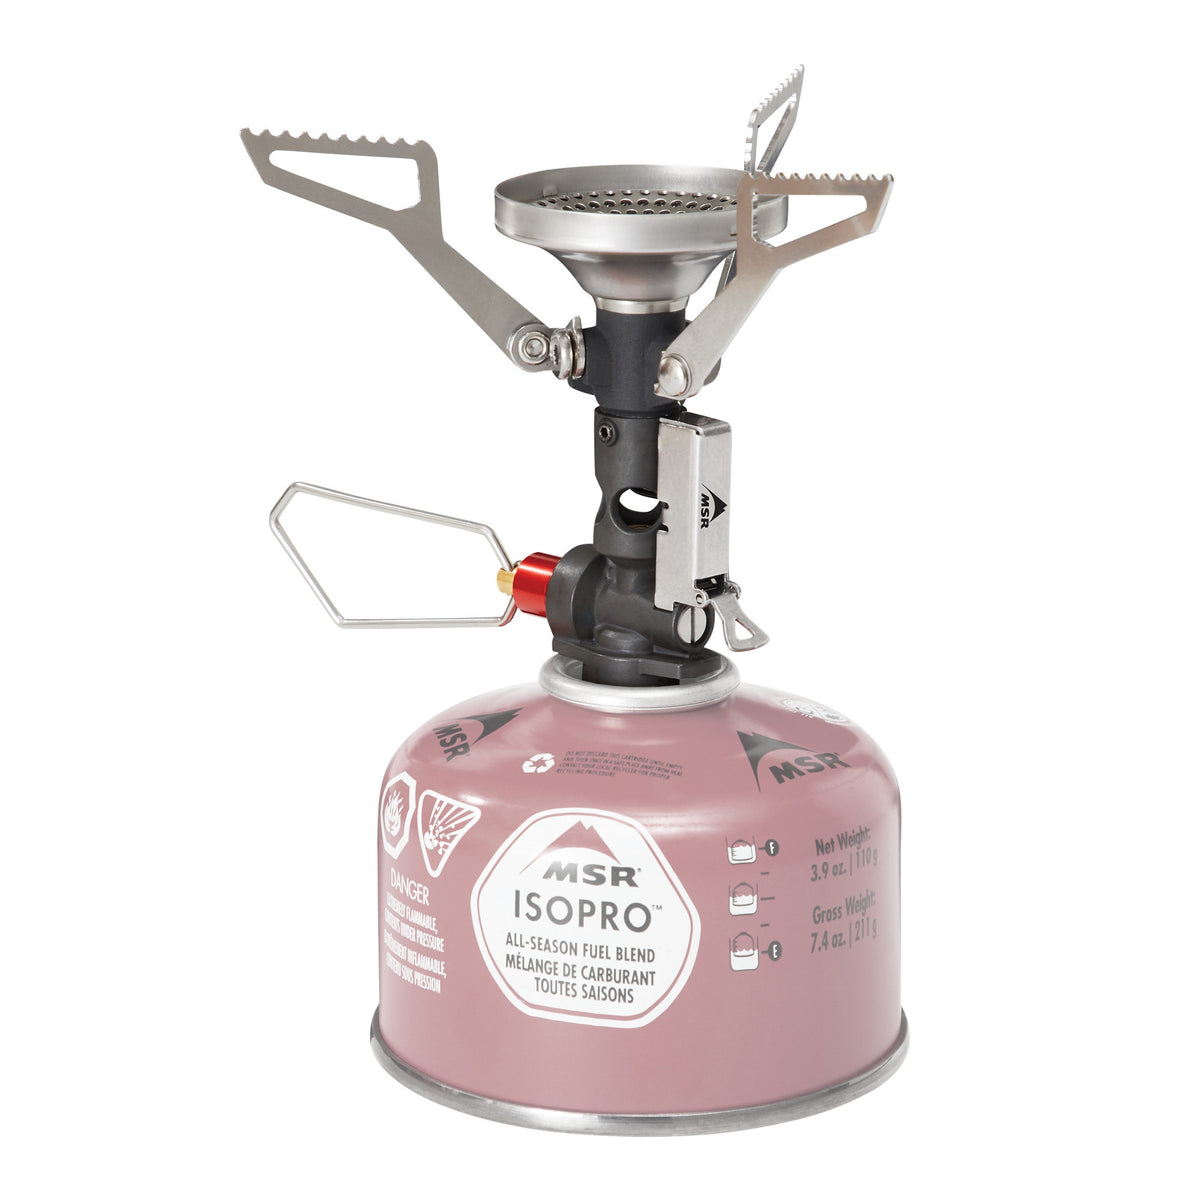 MSR Pocket Rocket Deluxe camping stove, front view